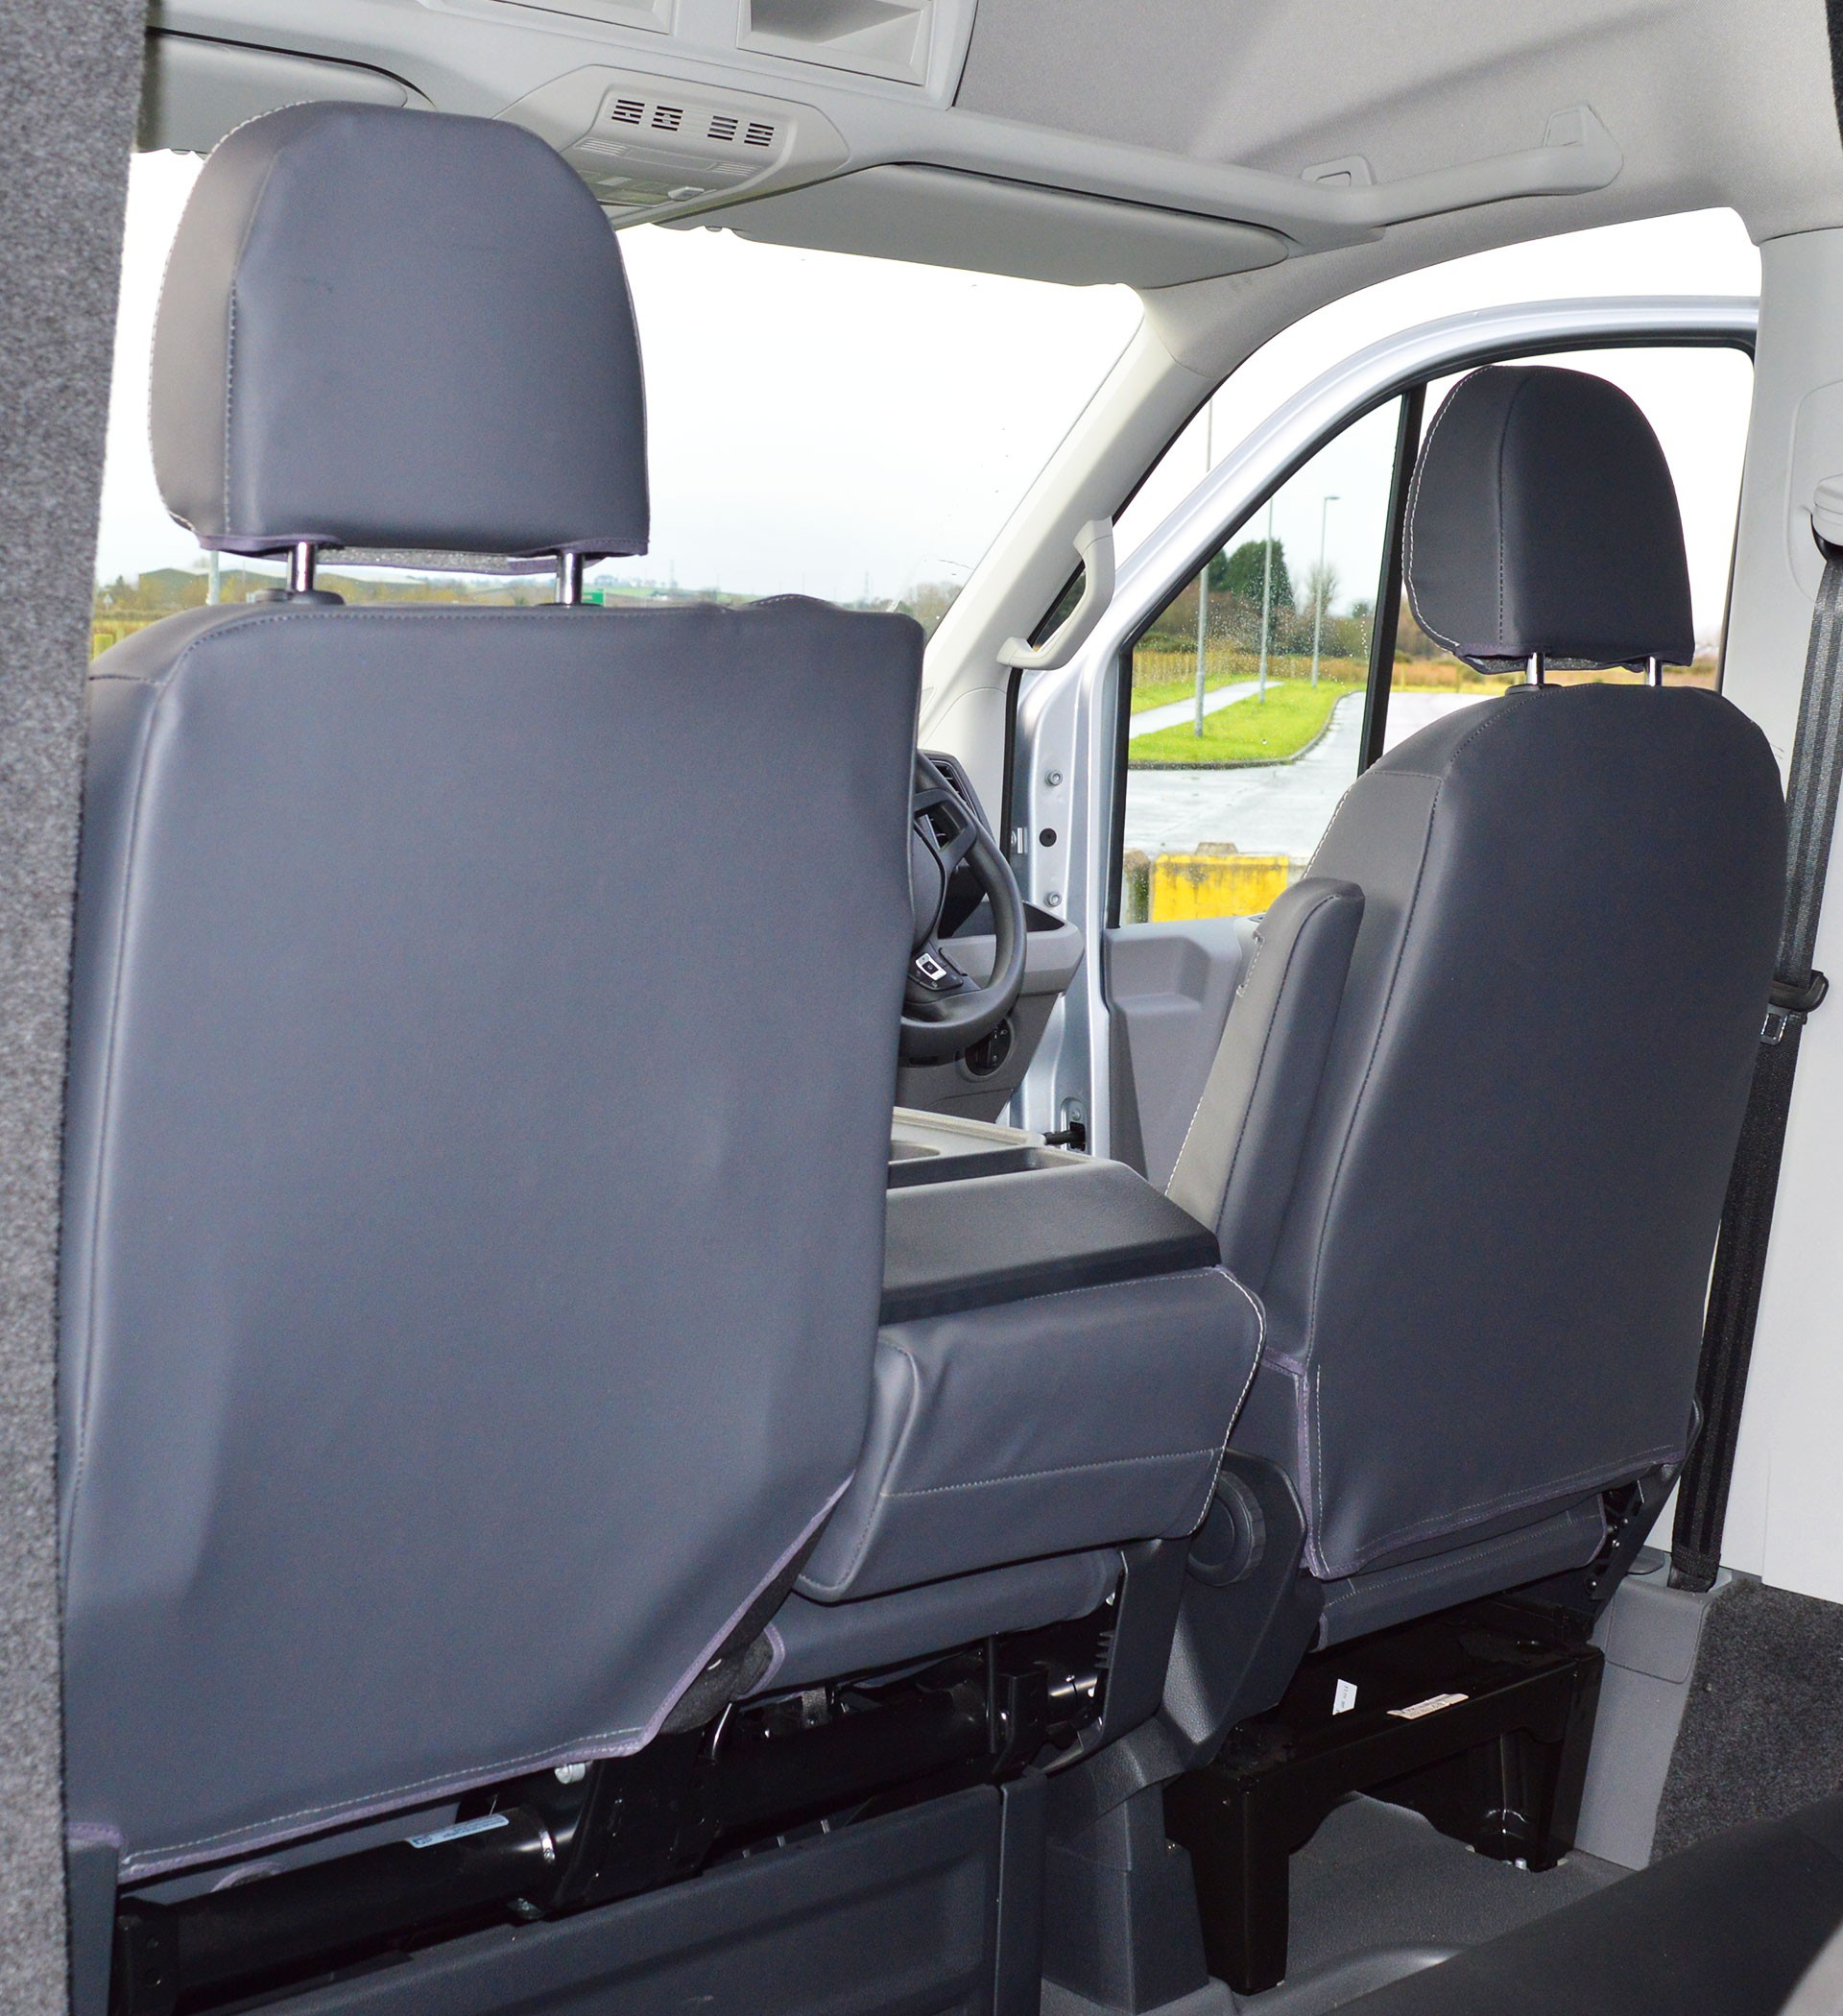 Volkswagen Crafter 2017 Waterproof Tailored Seat Covers